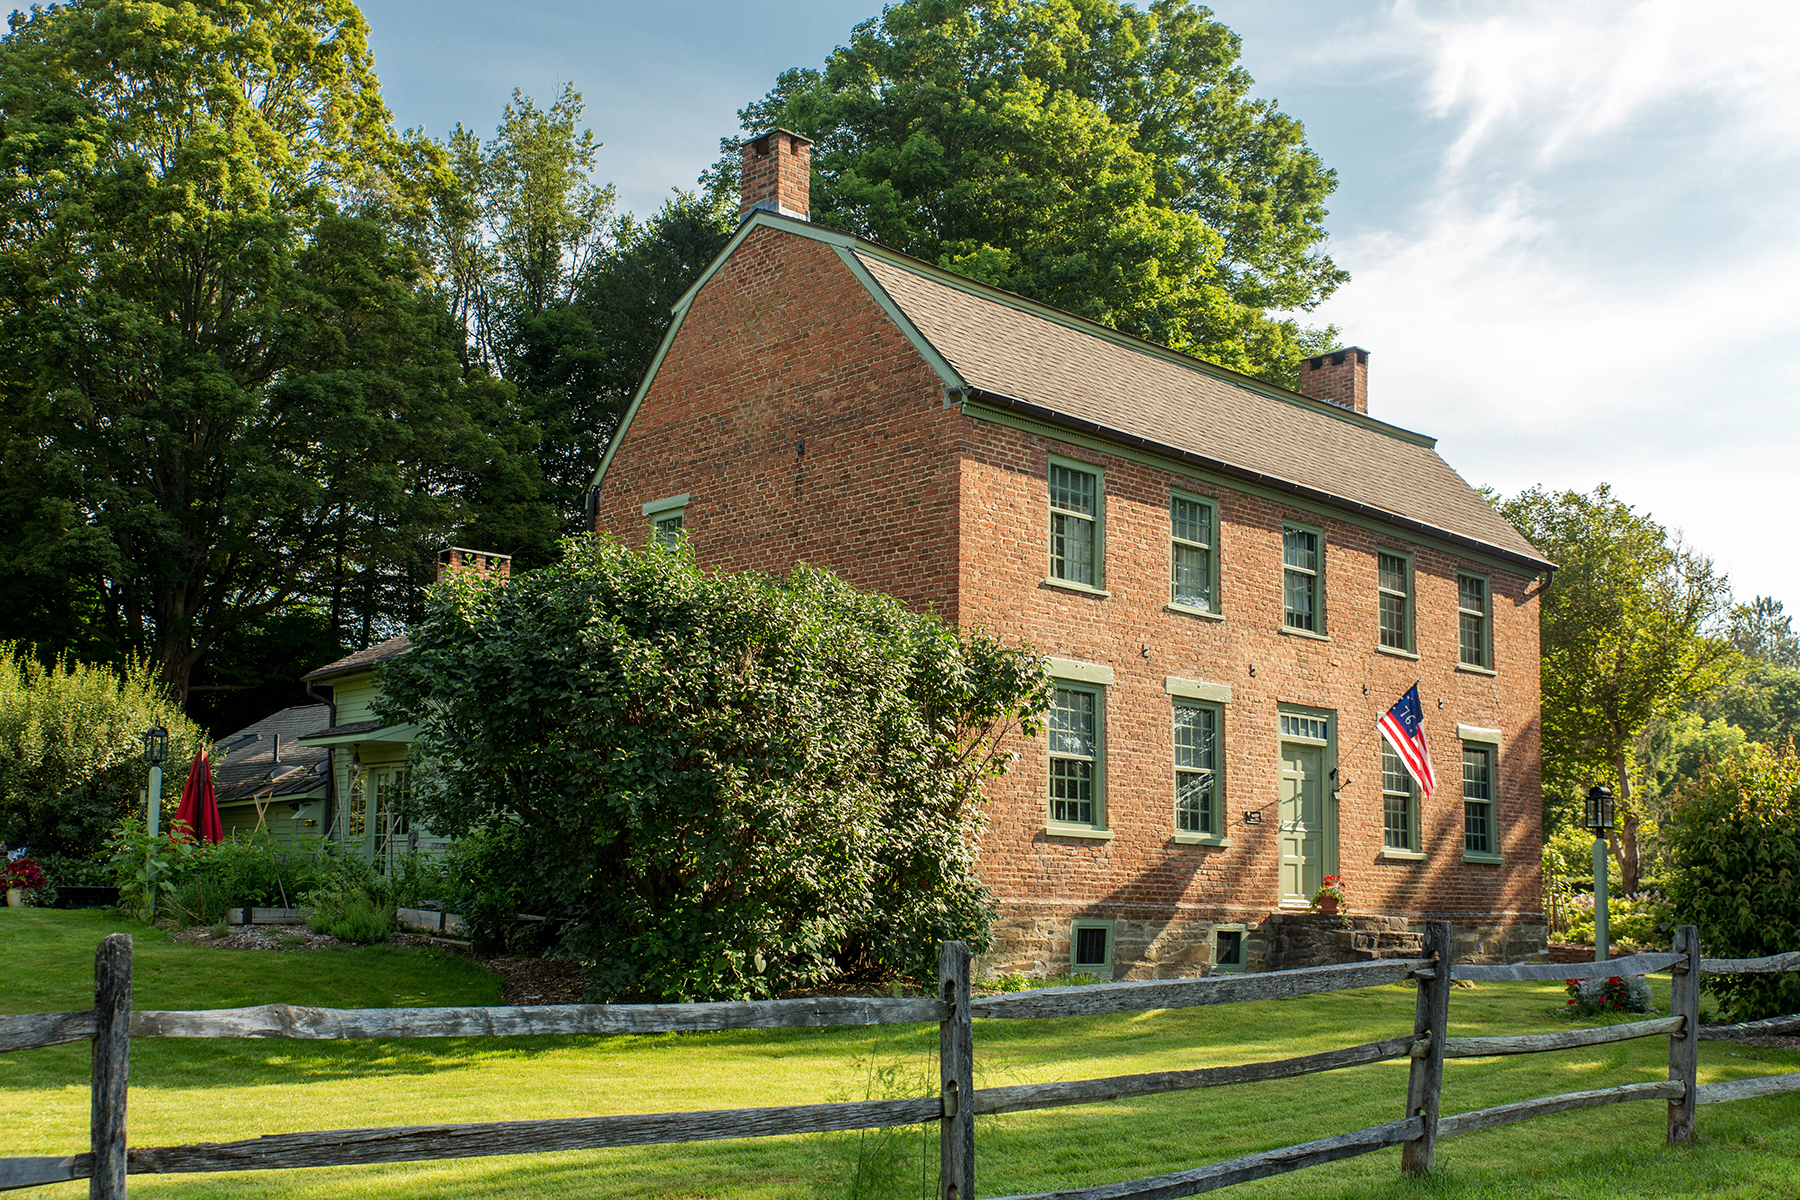 Single Family Home for Sale at HISTORIC RESTORED UPSTATE FARM 322 Wemple Rd Rotterdam, New York 12306 United States